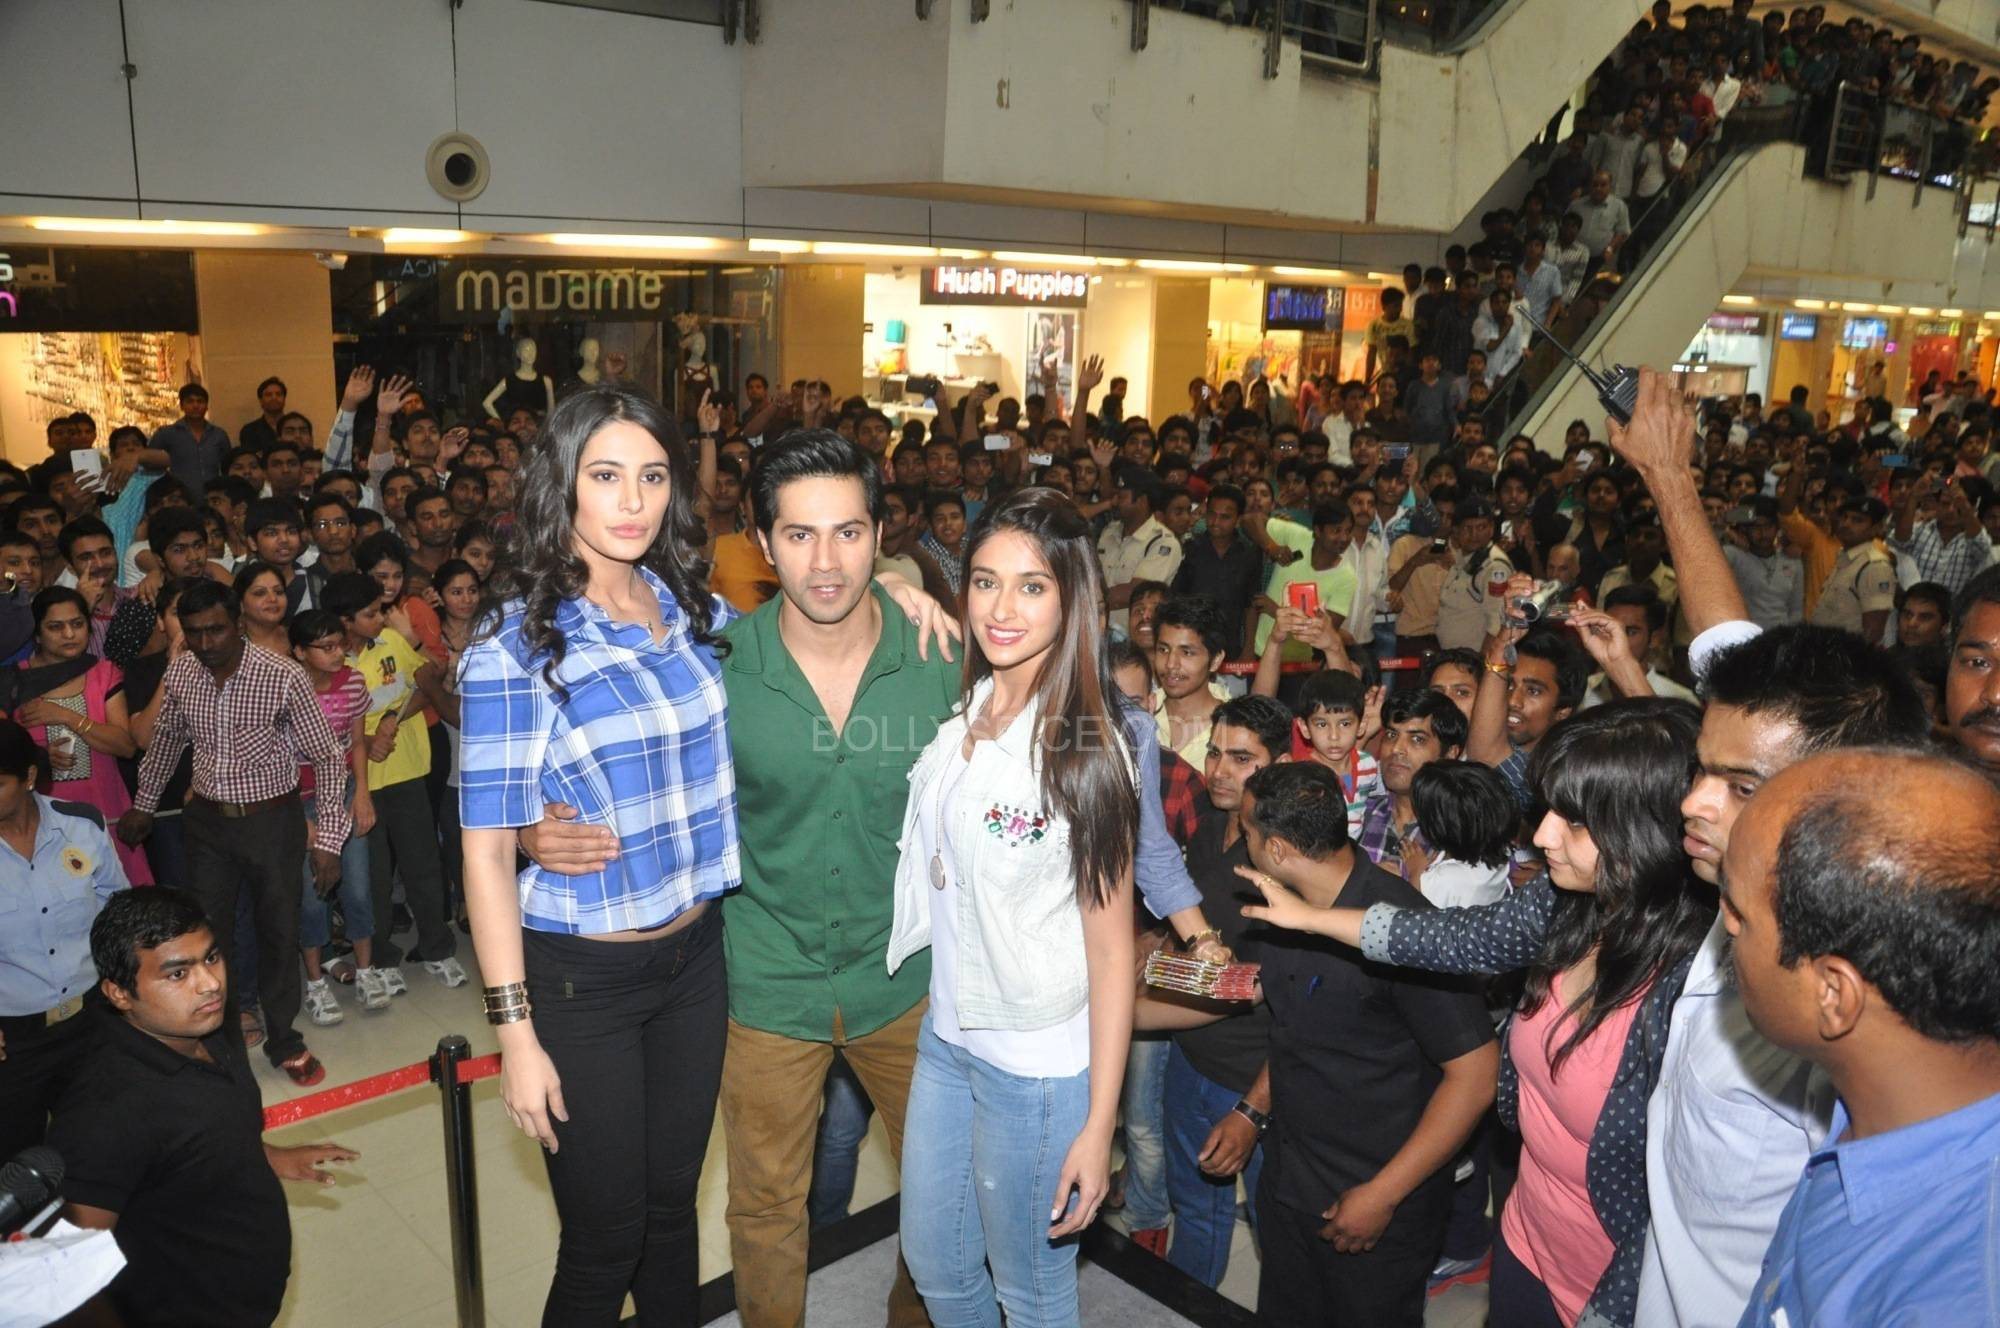 Nargis Fakri Varun Dhawan and Ileana Dcruz at C21 Mall in Indore 1 Varun Dhawan, Ileana D'cruz and Nargis Fakri promote Main Tera Hero in Indore!